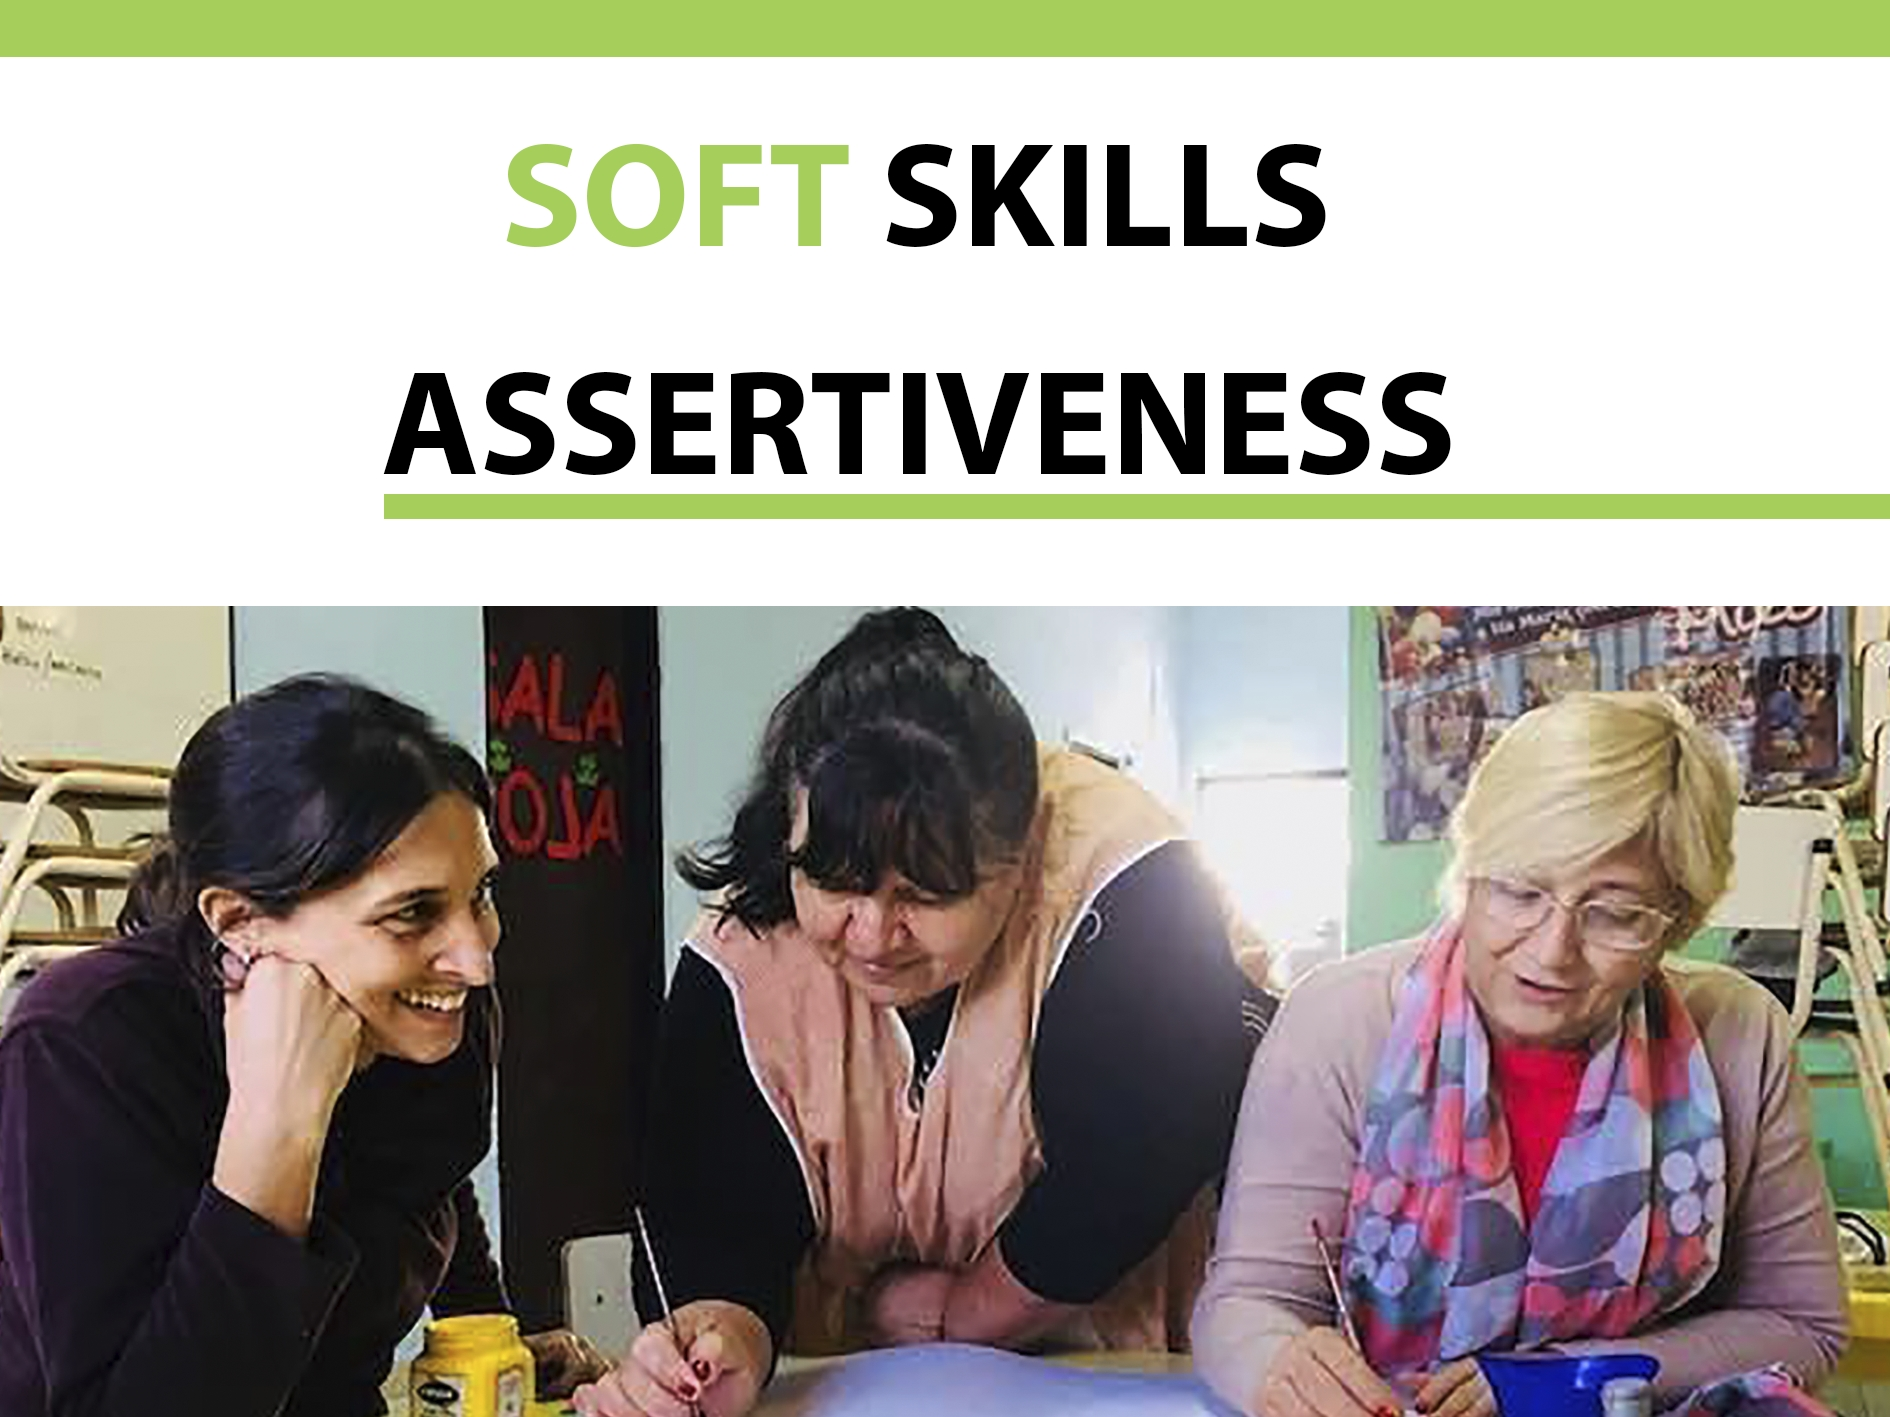 Let's talk about soft skills: Assertiveness